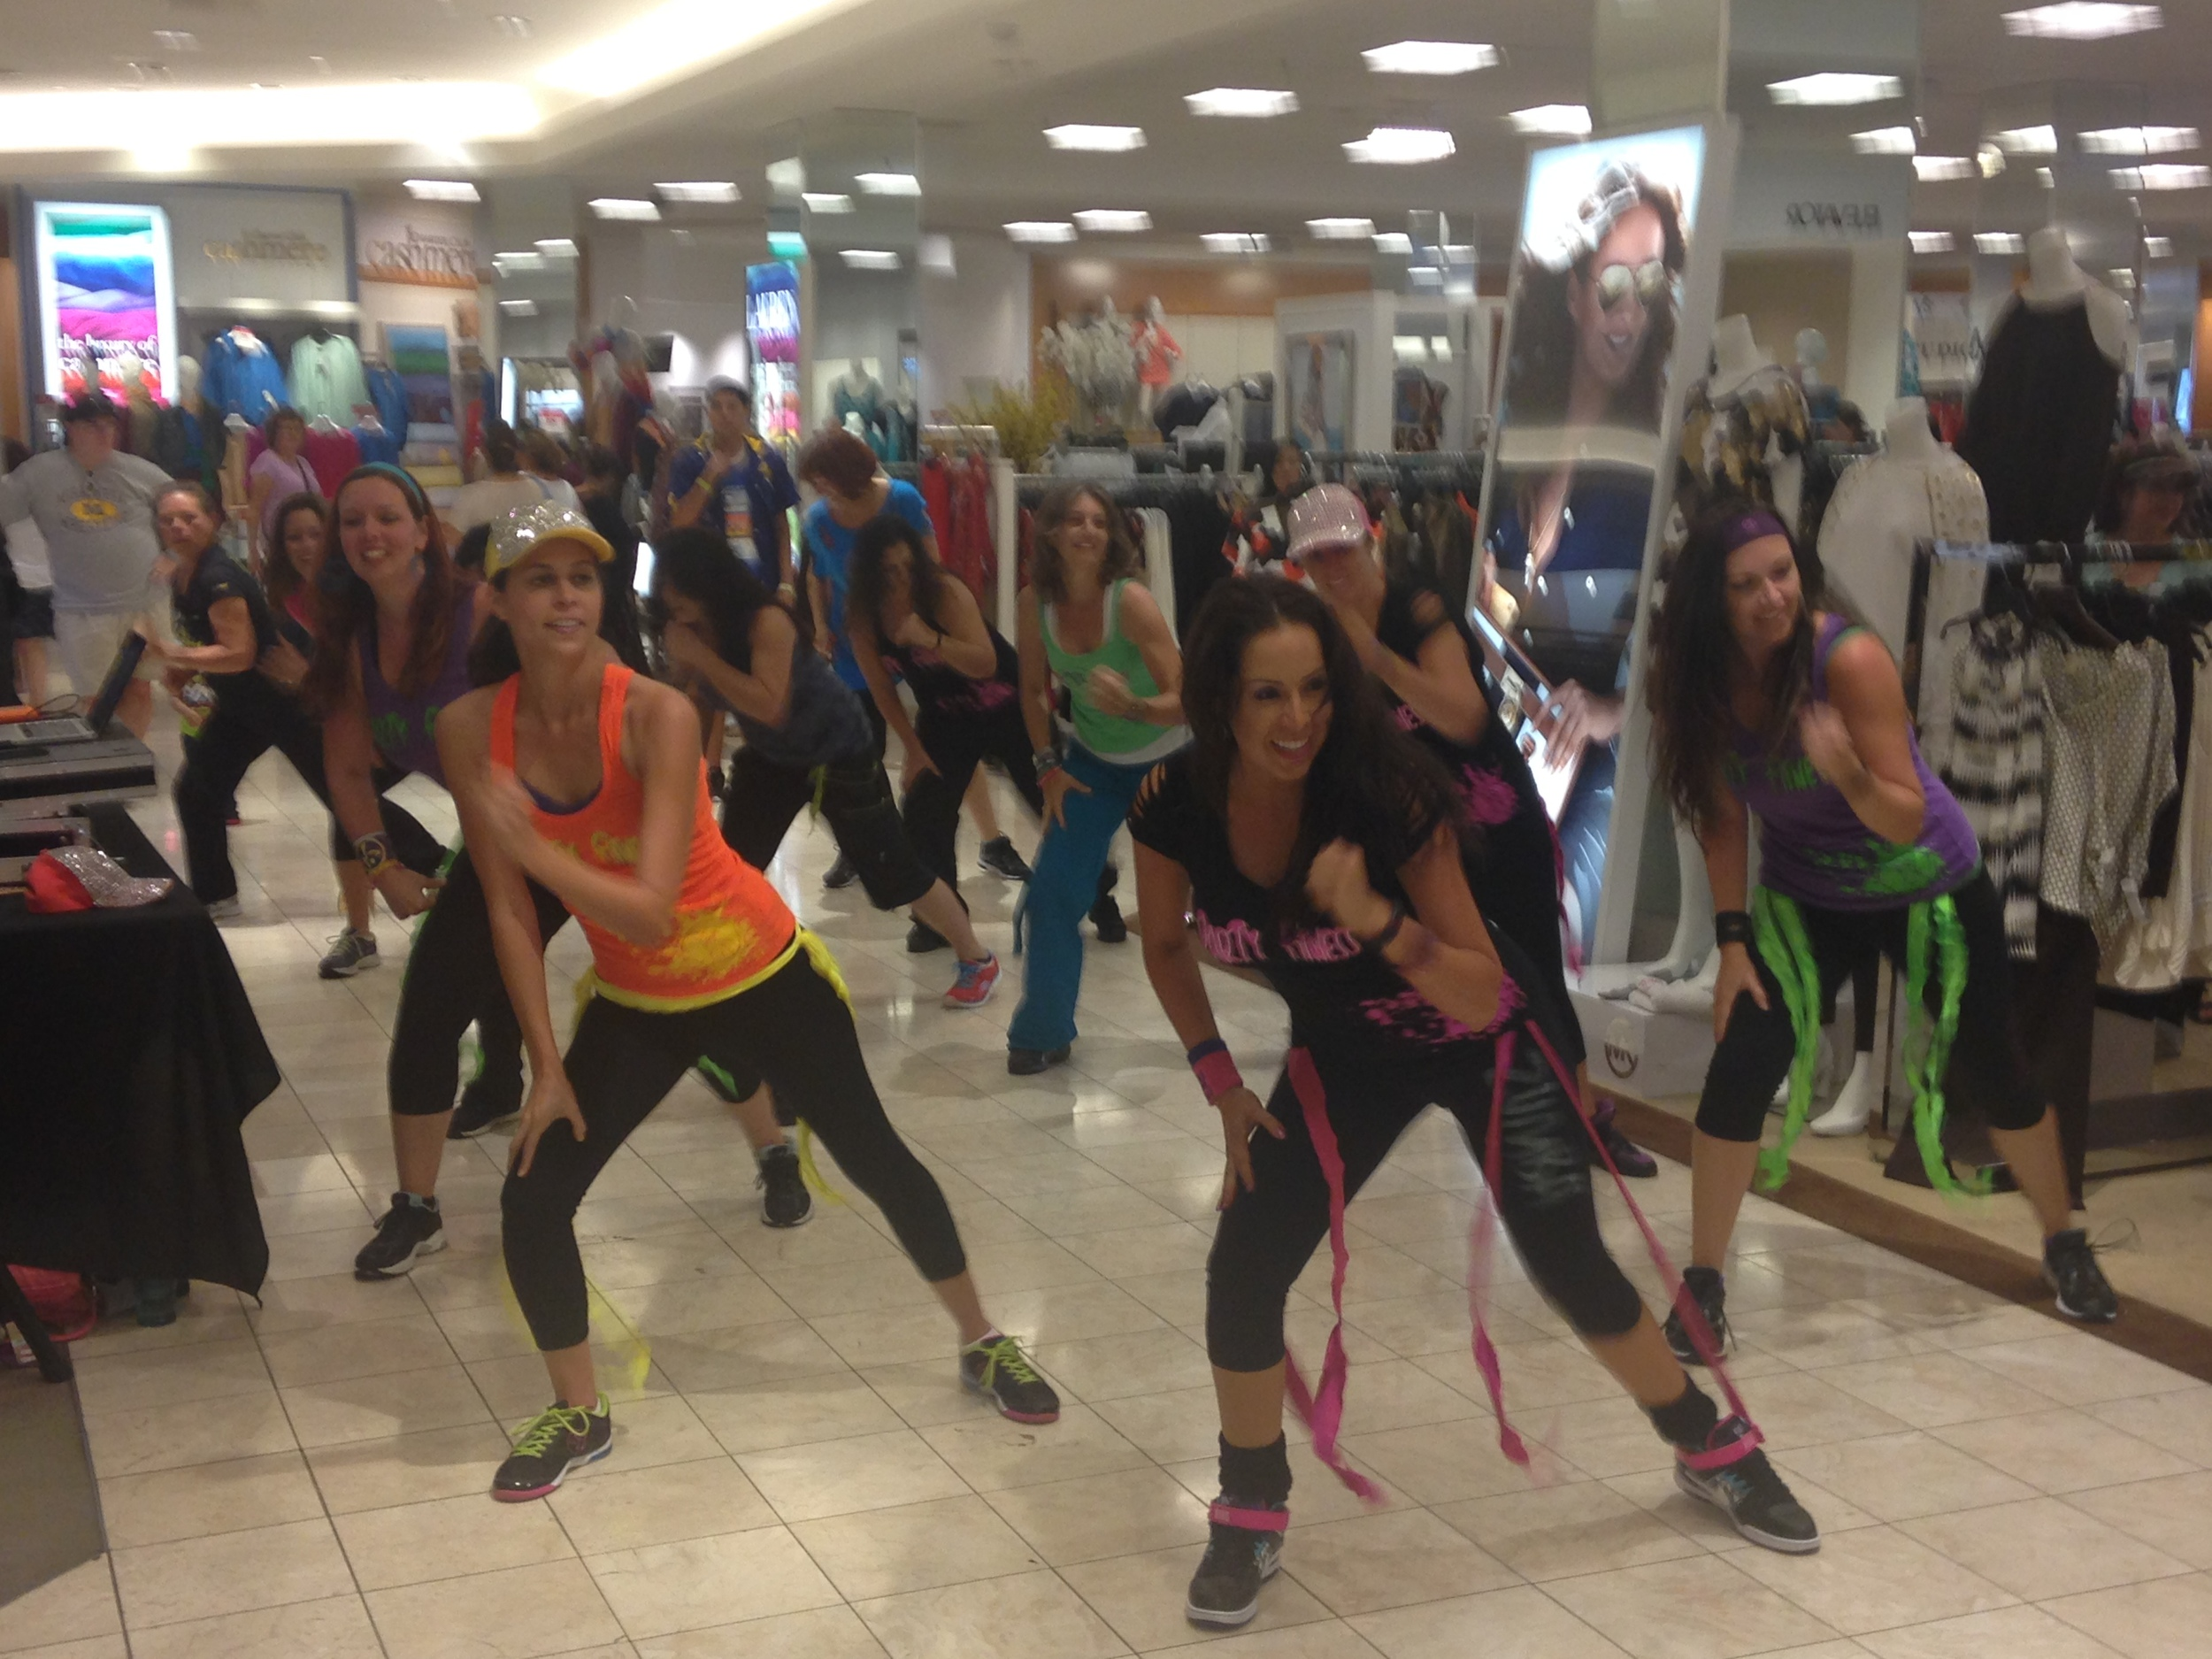 Party Fitness Performing at Macy's Mission Valley Mall